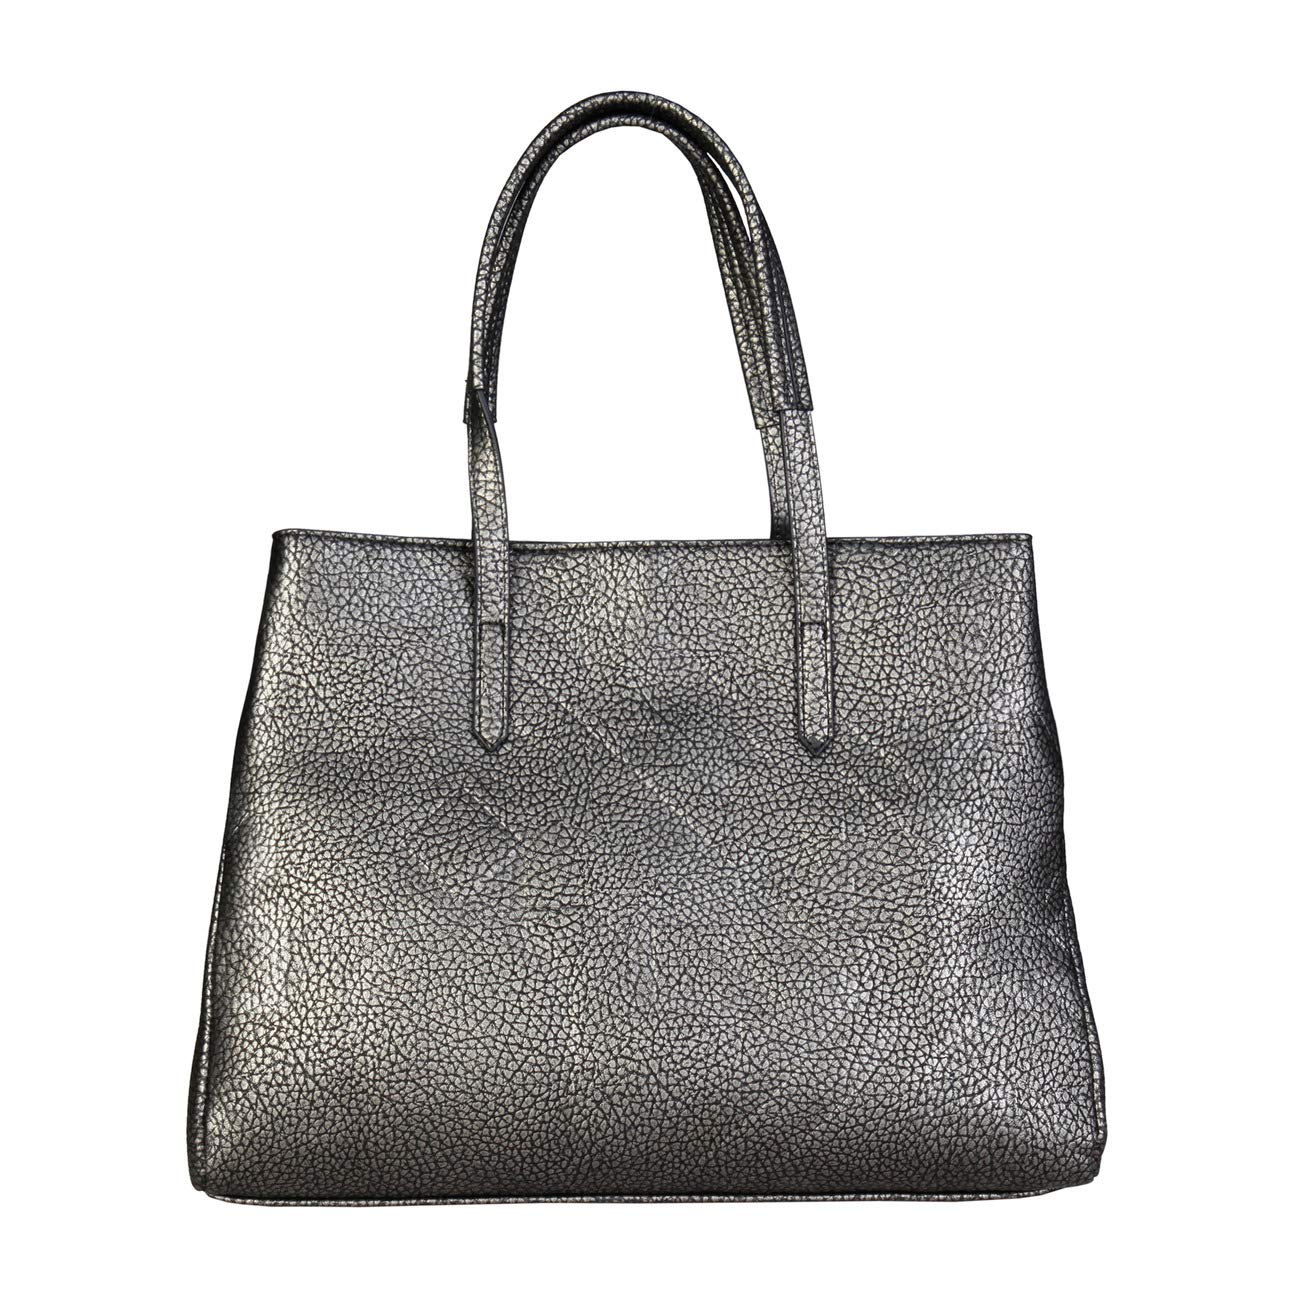 7048483e17 Versace Jeans Women Shoulder Bag Grey Genuine Designer Shoulder Bag RRP  £225.00  Amazon.co.uk  Shoes   Bags